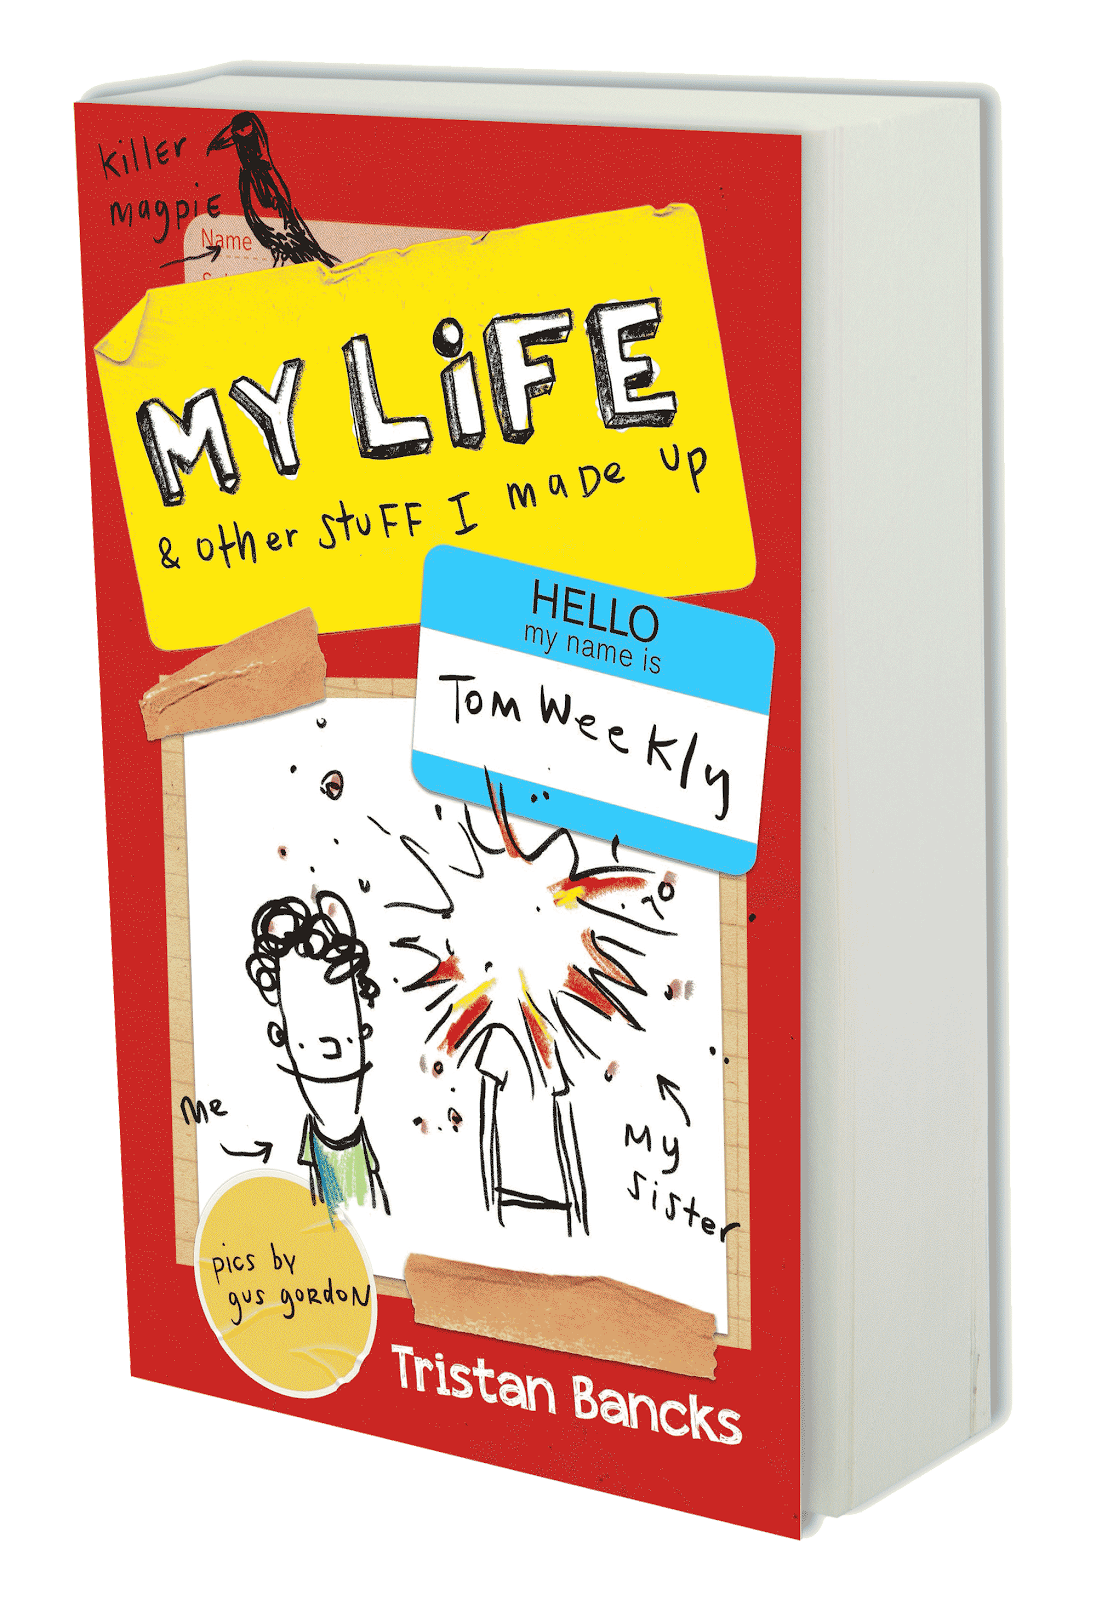 my life book review